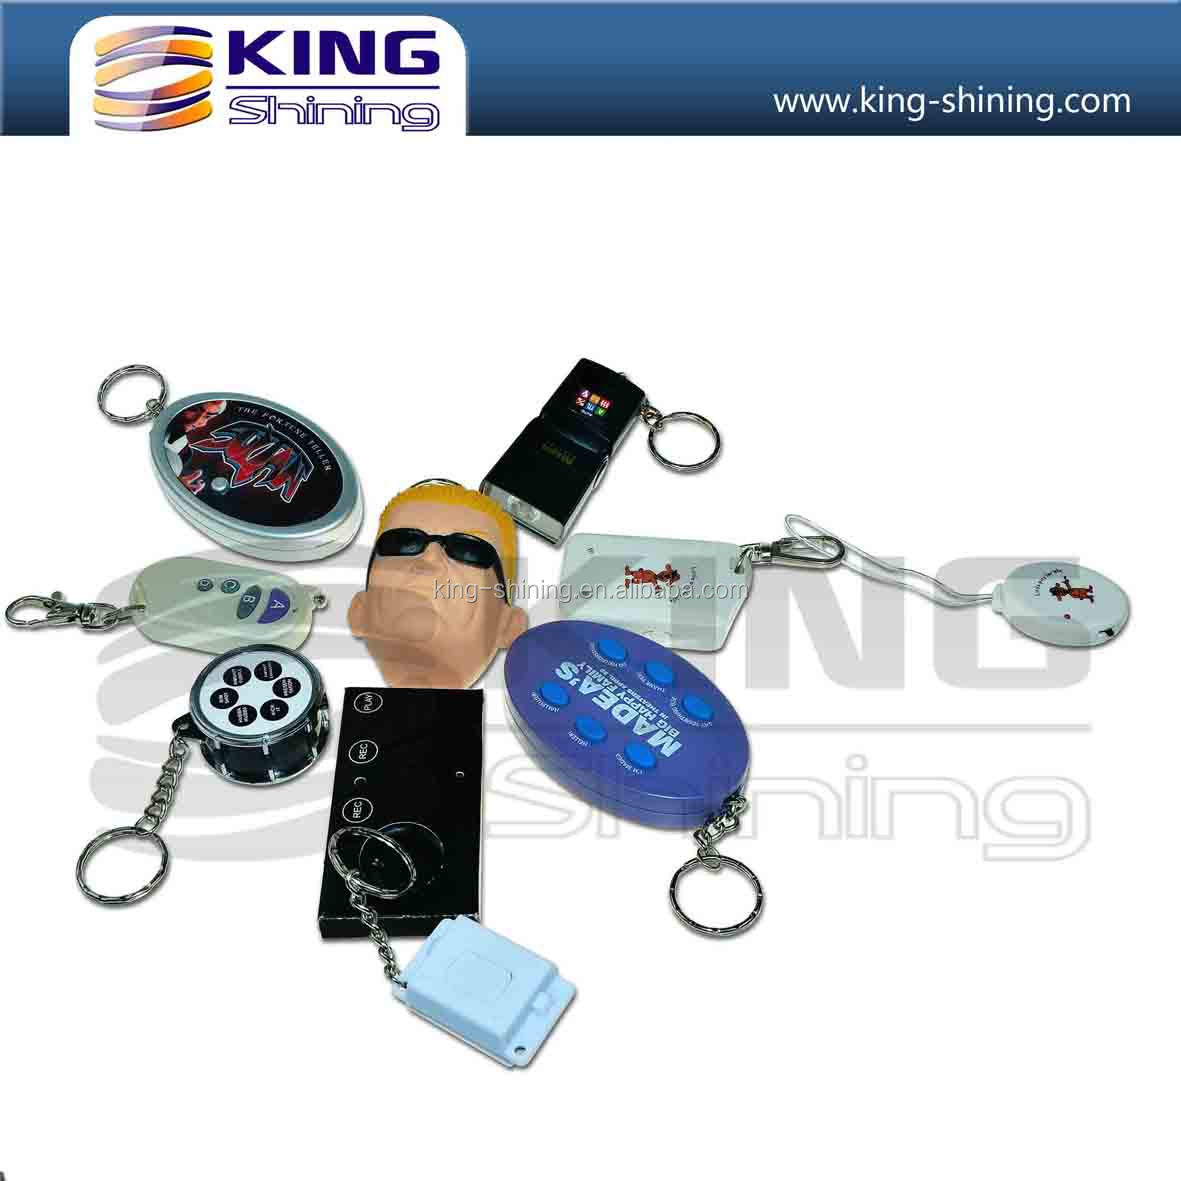 Best sell recordable sound/music keychain/car keychain for promotion gifts